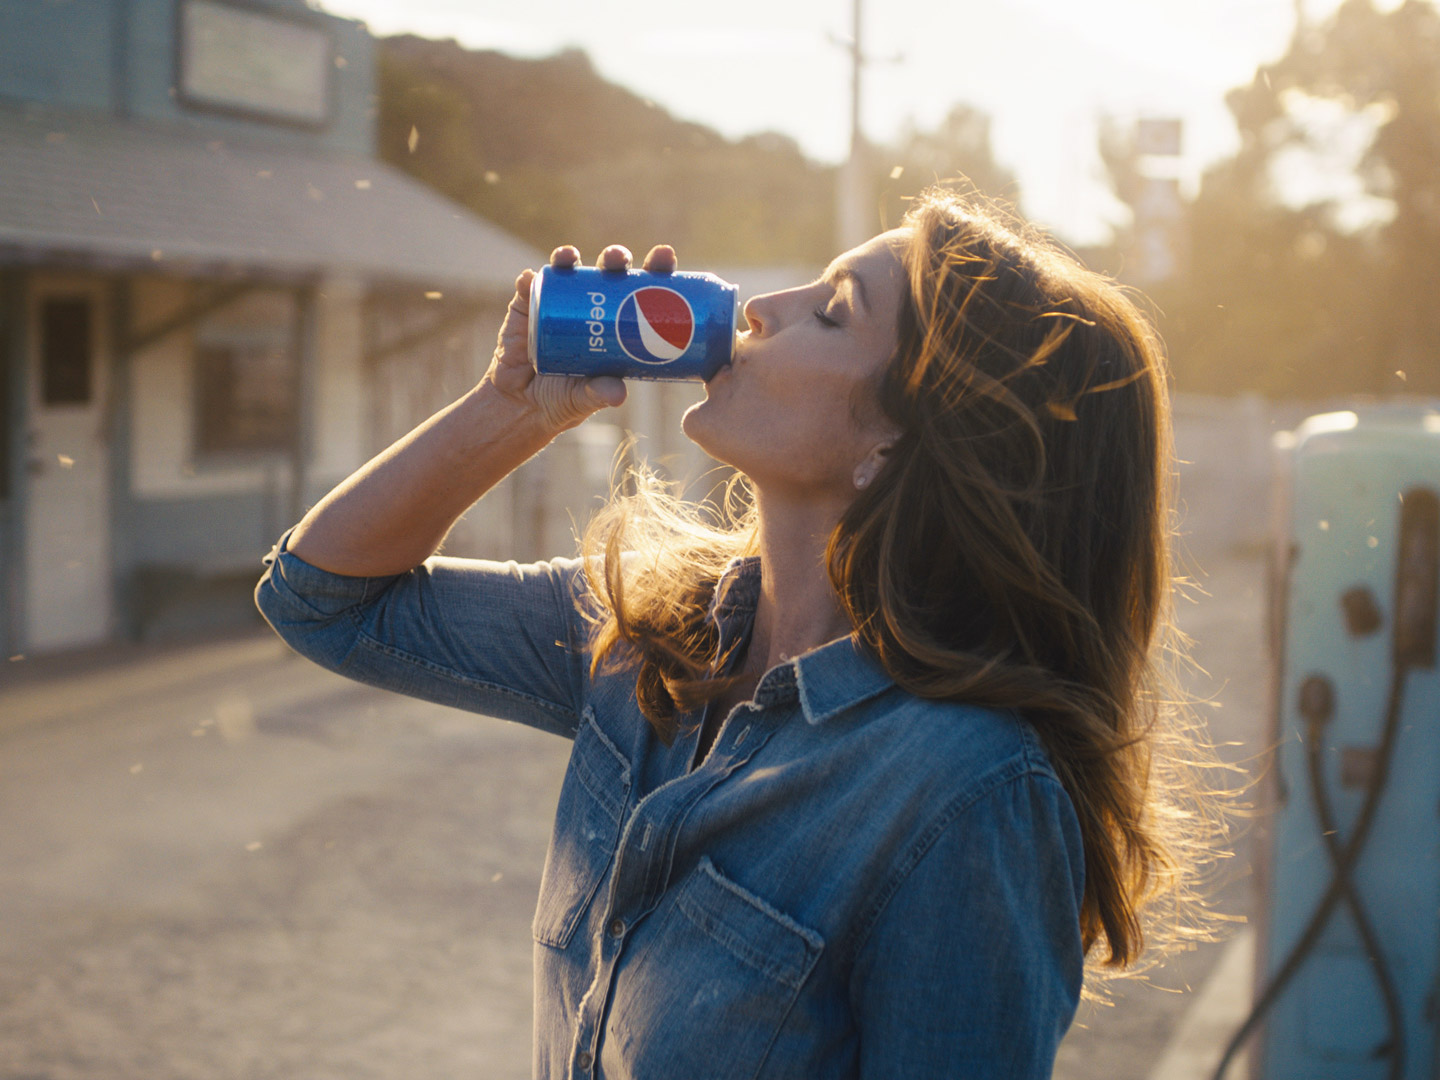 Cindy Crawford Teams Up with Pepsi for Super Bowl LII Advertisement